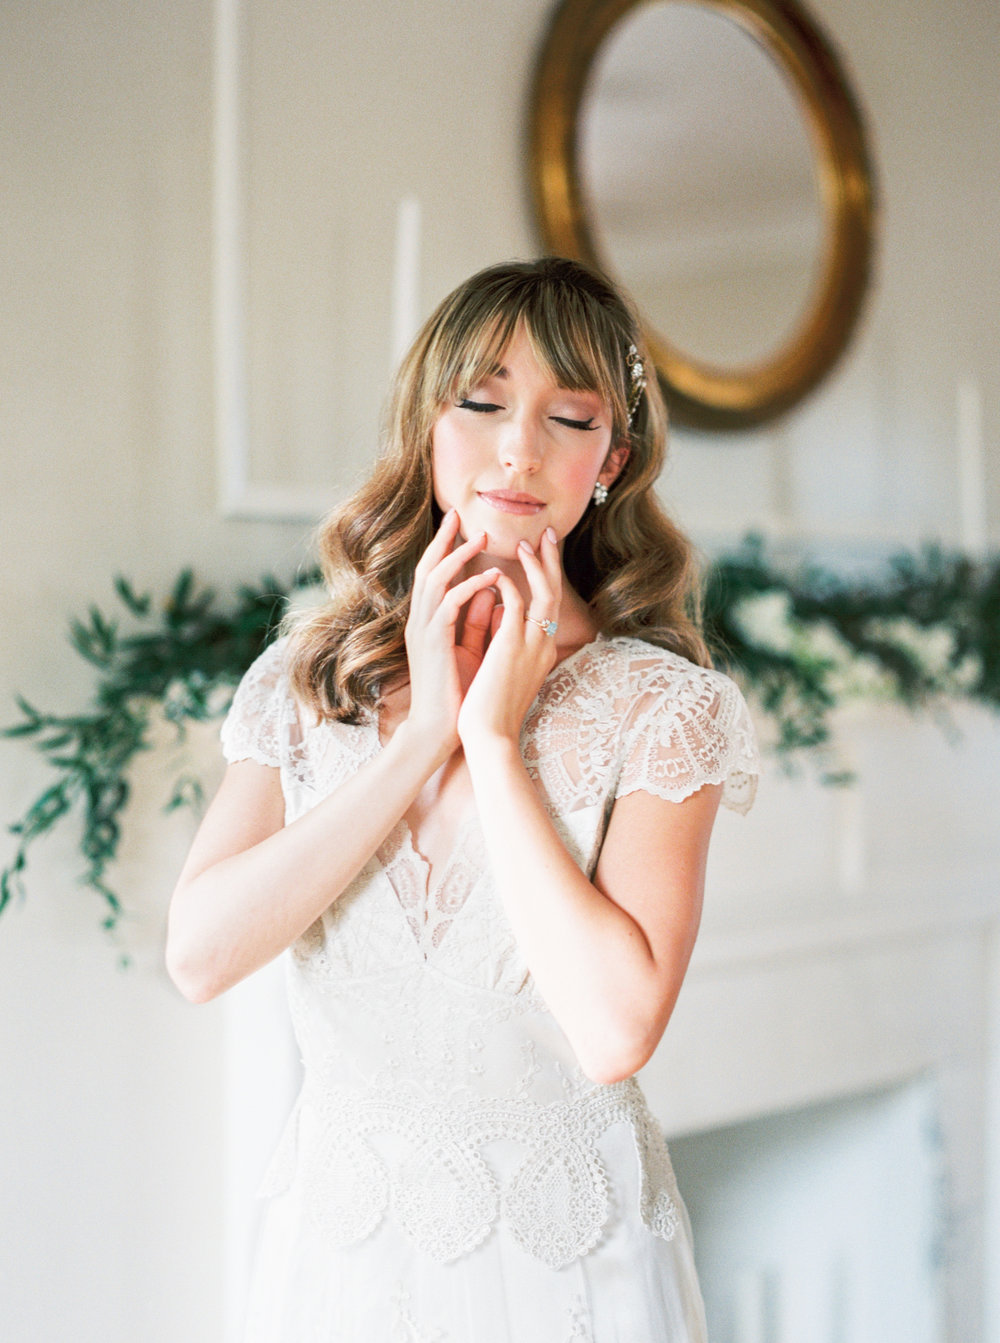 the cypress grove estate house in orlando florida, styled wedding bridal photo in claire pettibone gown